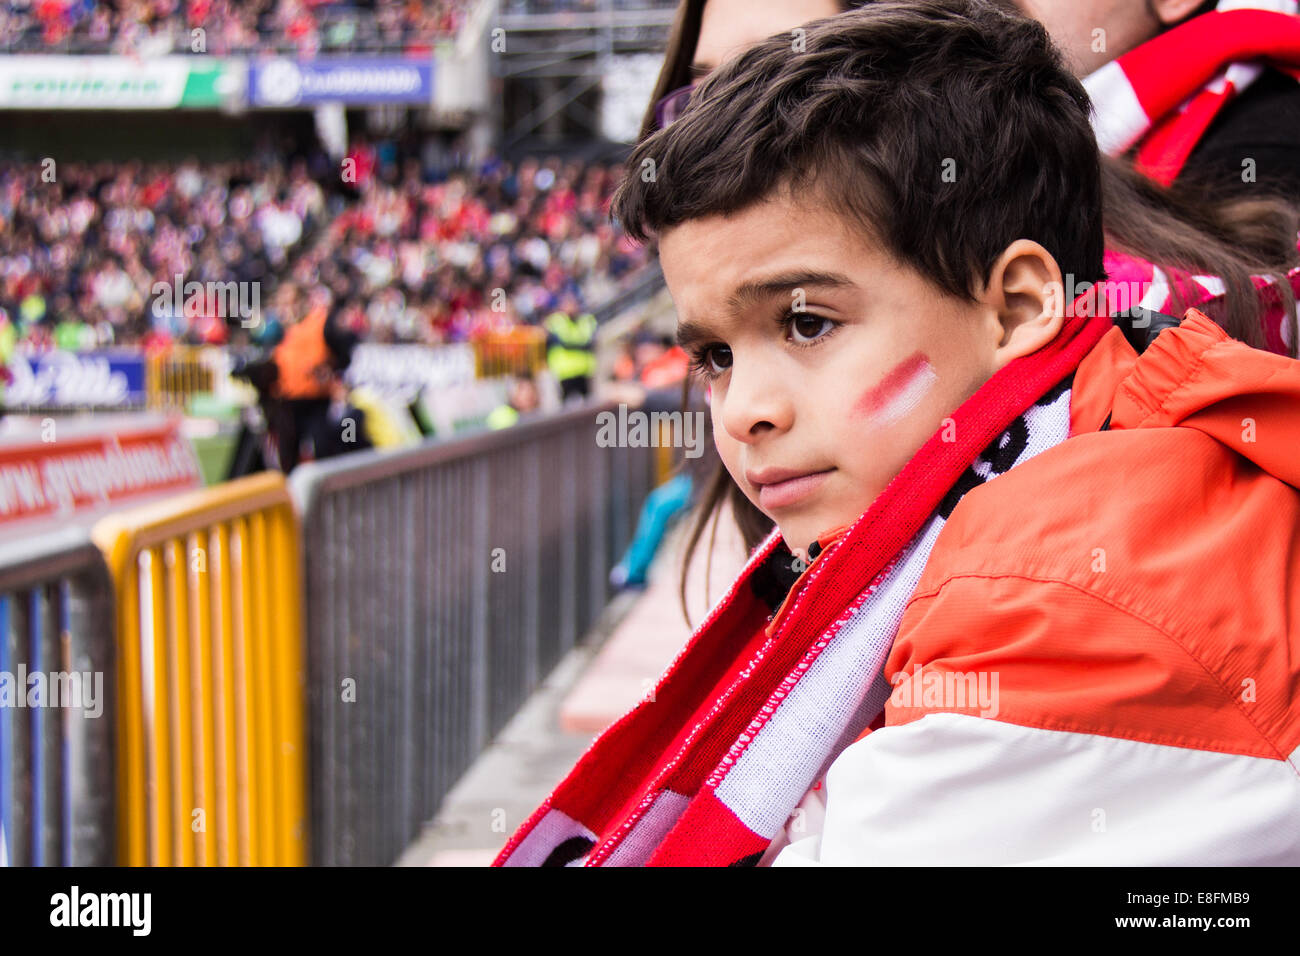 Spain, Madrid, Boy (6-7) at football match Stock Photo